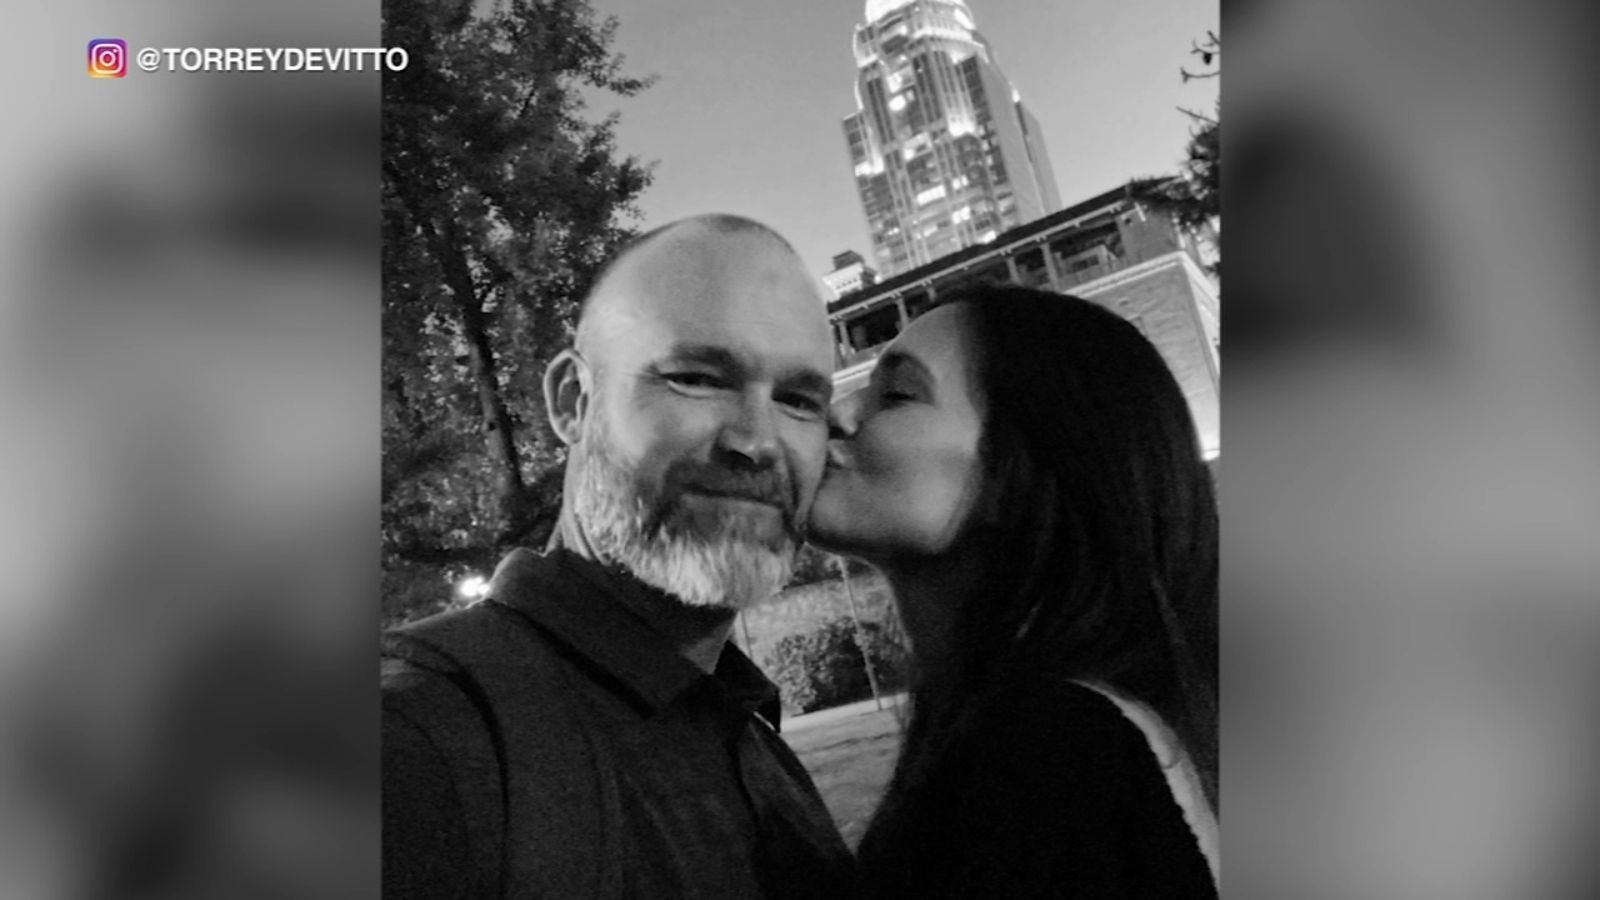 Chicago Cubs manager David Ross, 'Chicago Med' star Torrey Devitto announce relationship